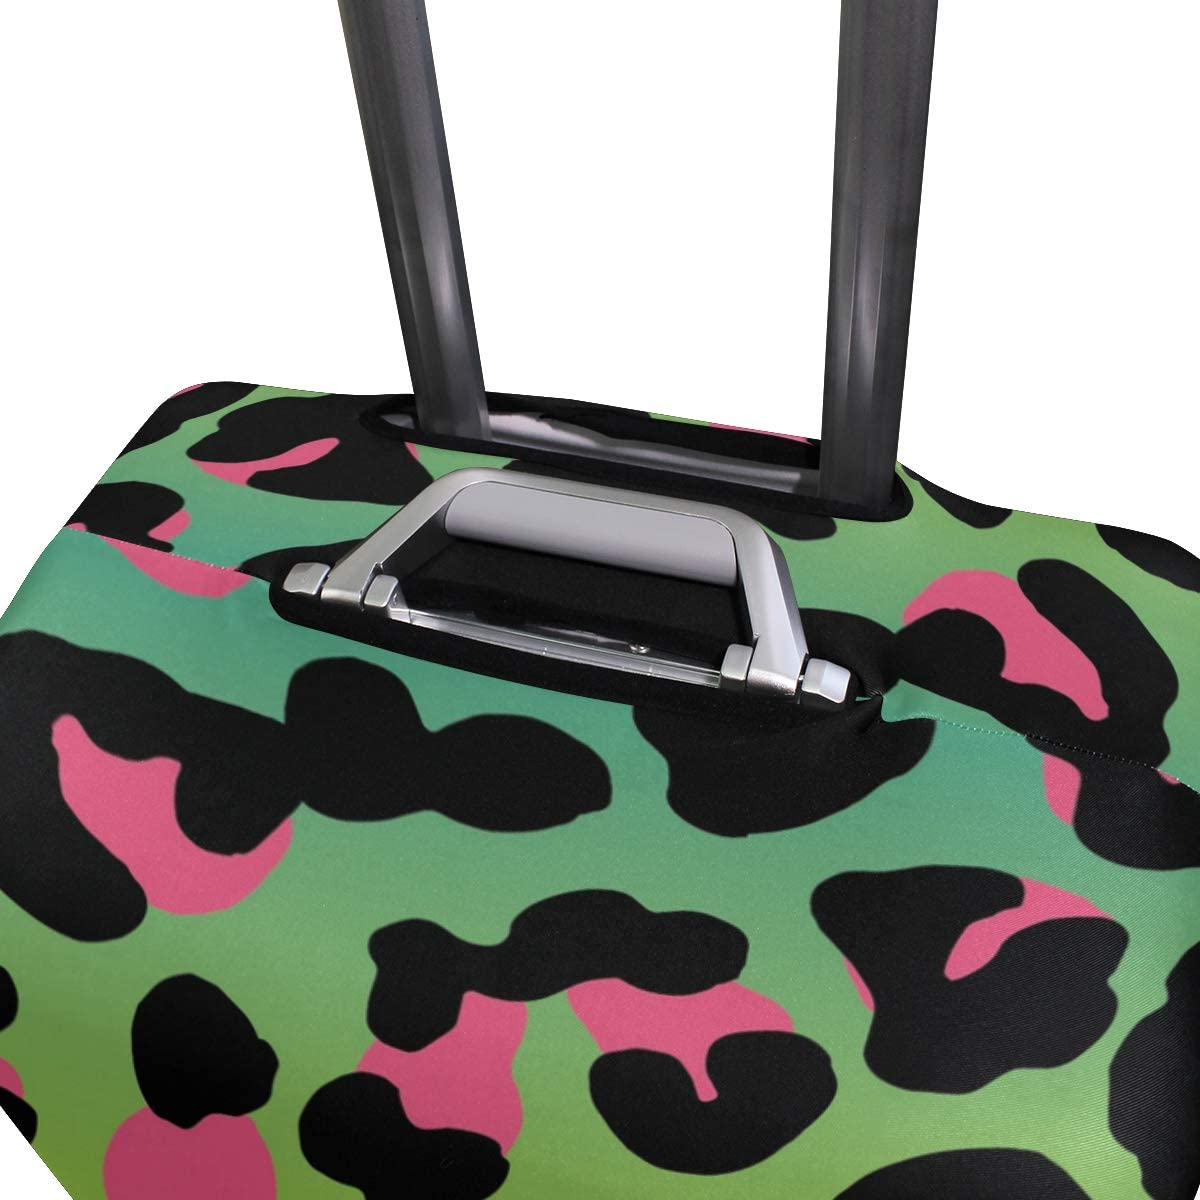 FOLPPLY Leopard Patten Luggage Cover Baggage Suitcase Travel Protector Fit for 18-32 Inch